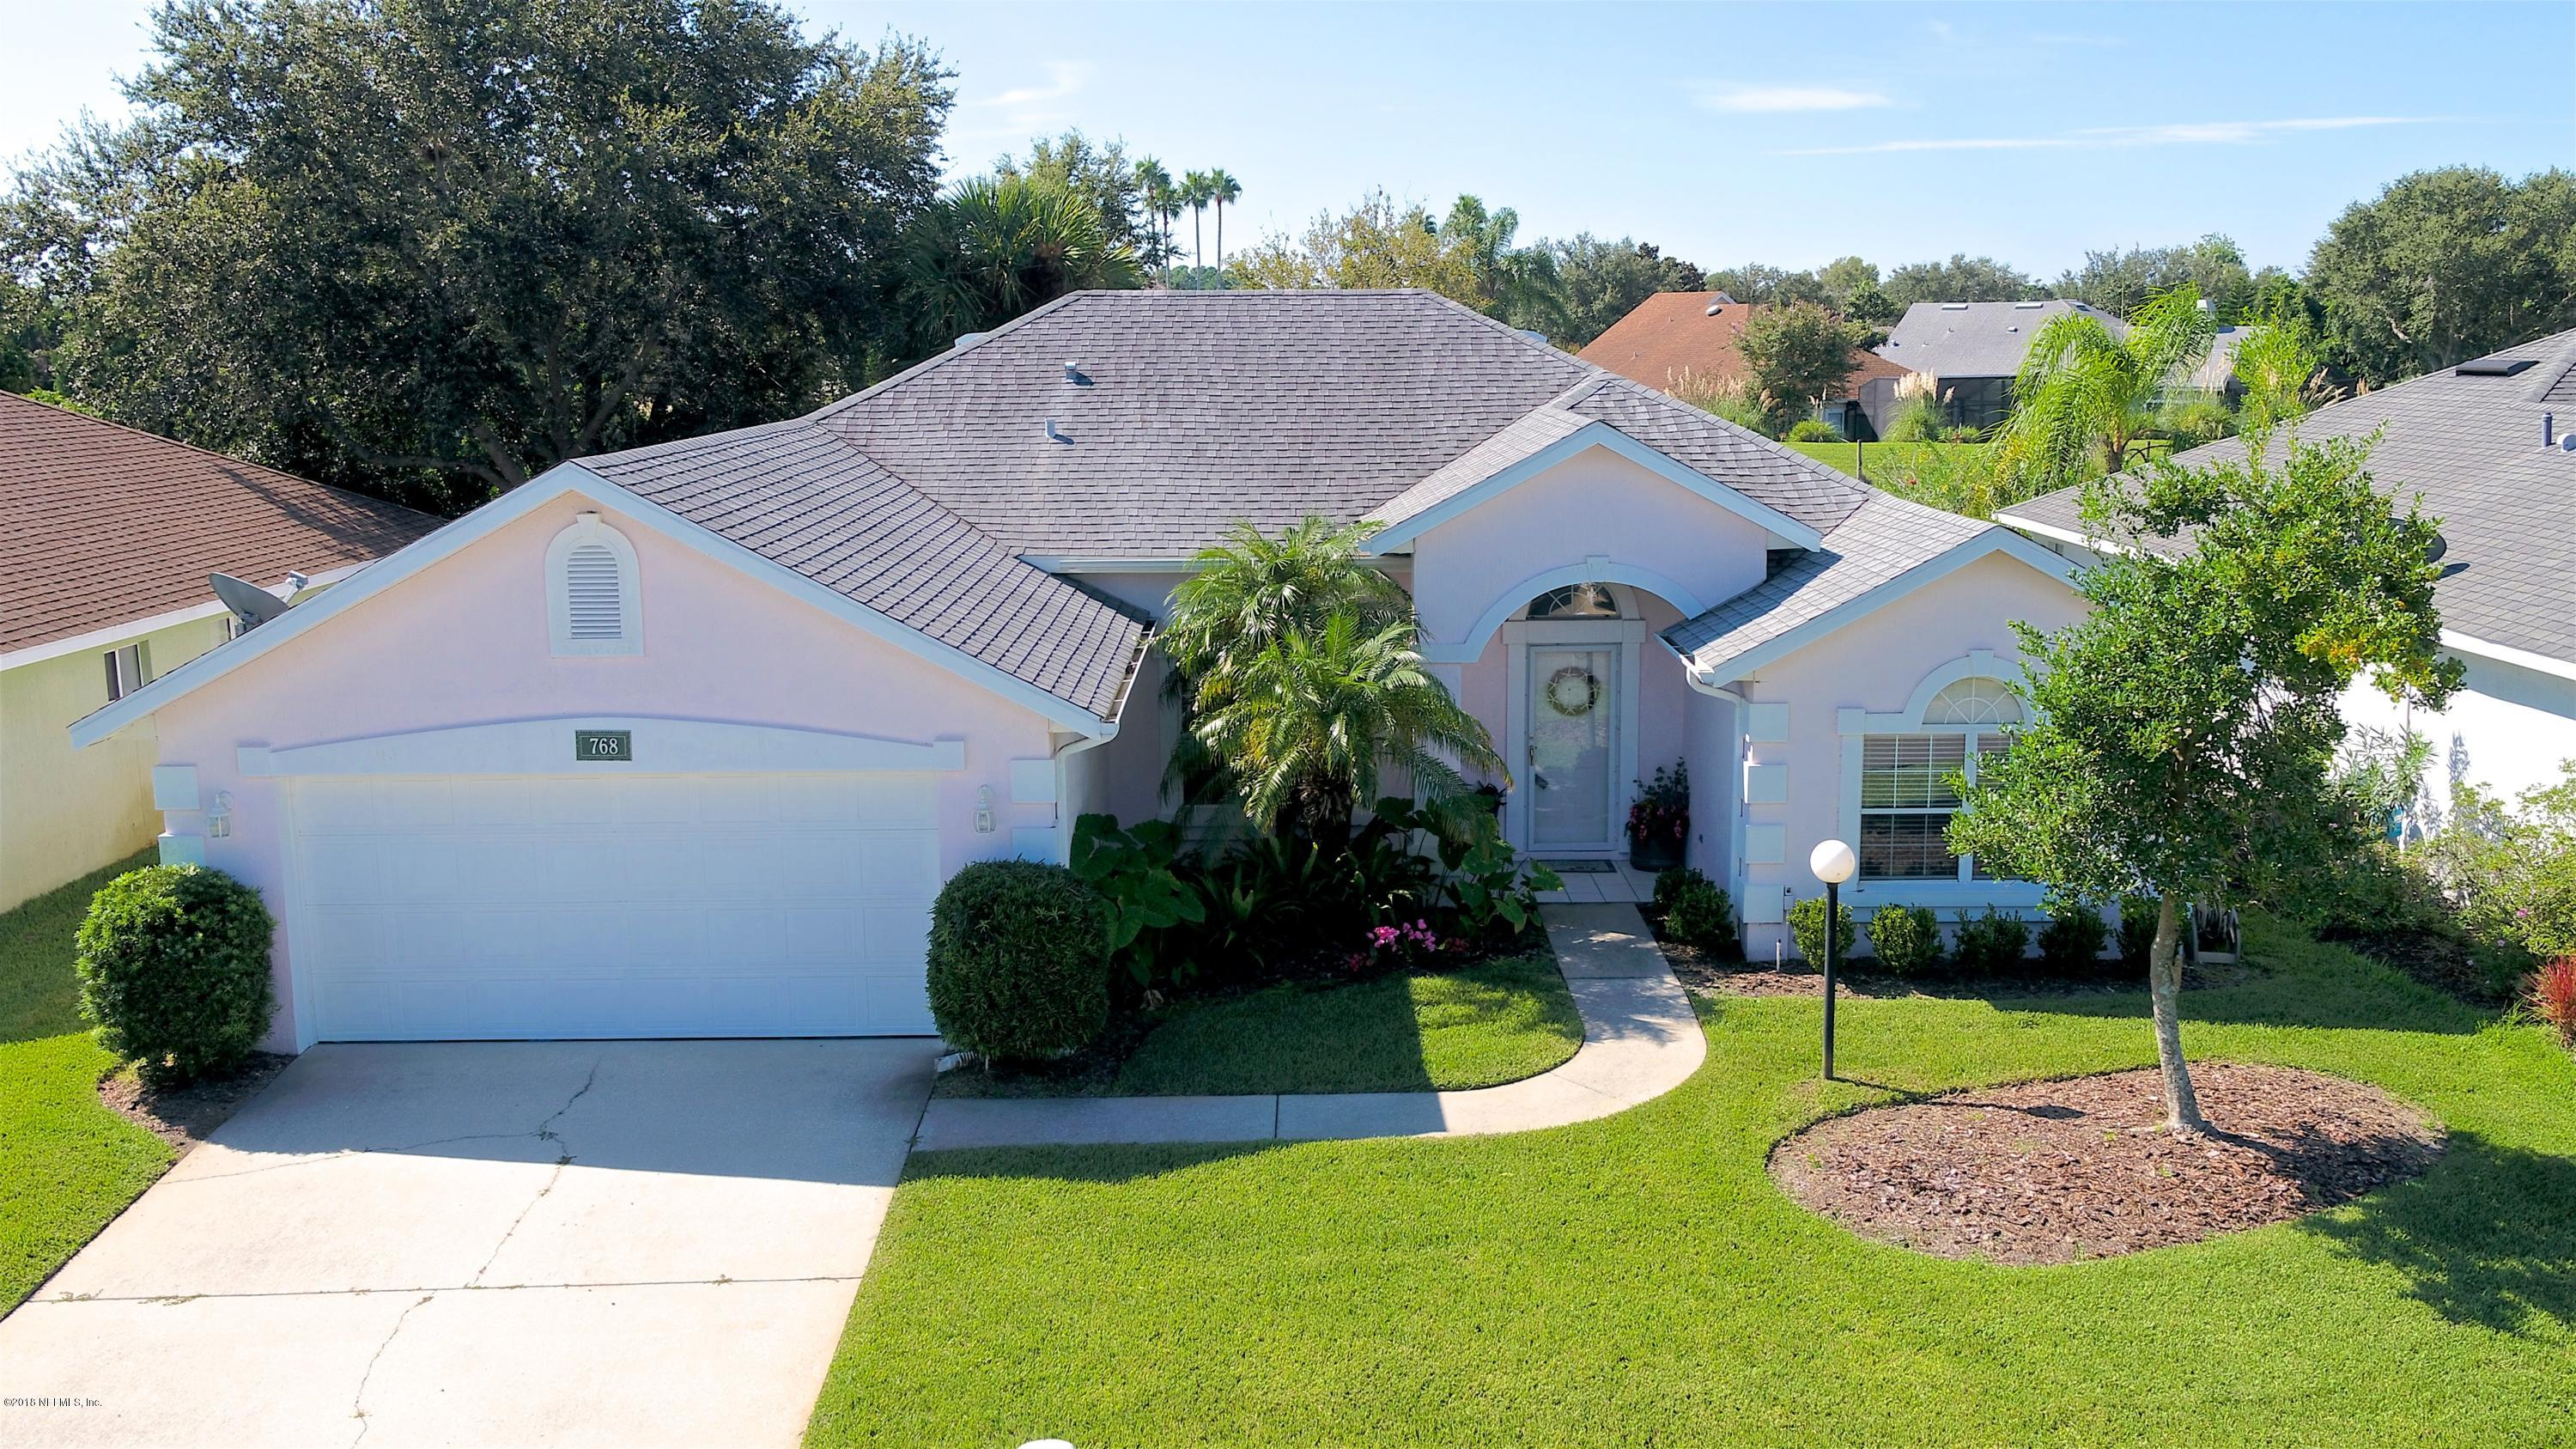 768 CAPTAINS, ST AUGUSTINE, FLORIDA 32080, 3 Bedrooms Bedrooms, ,2 BathroomsBathrooms,Residential - single family,For sale,CAPTAINS,957489